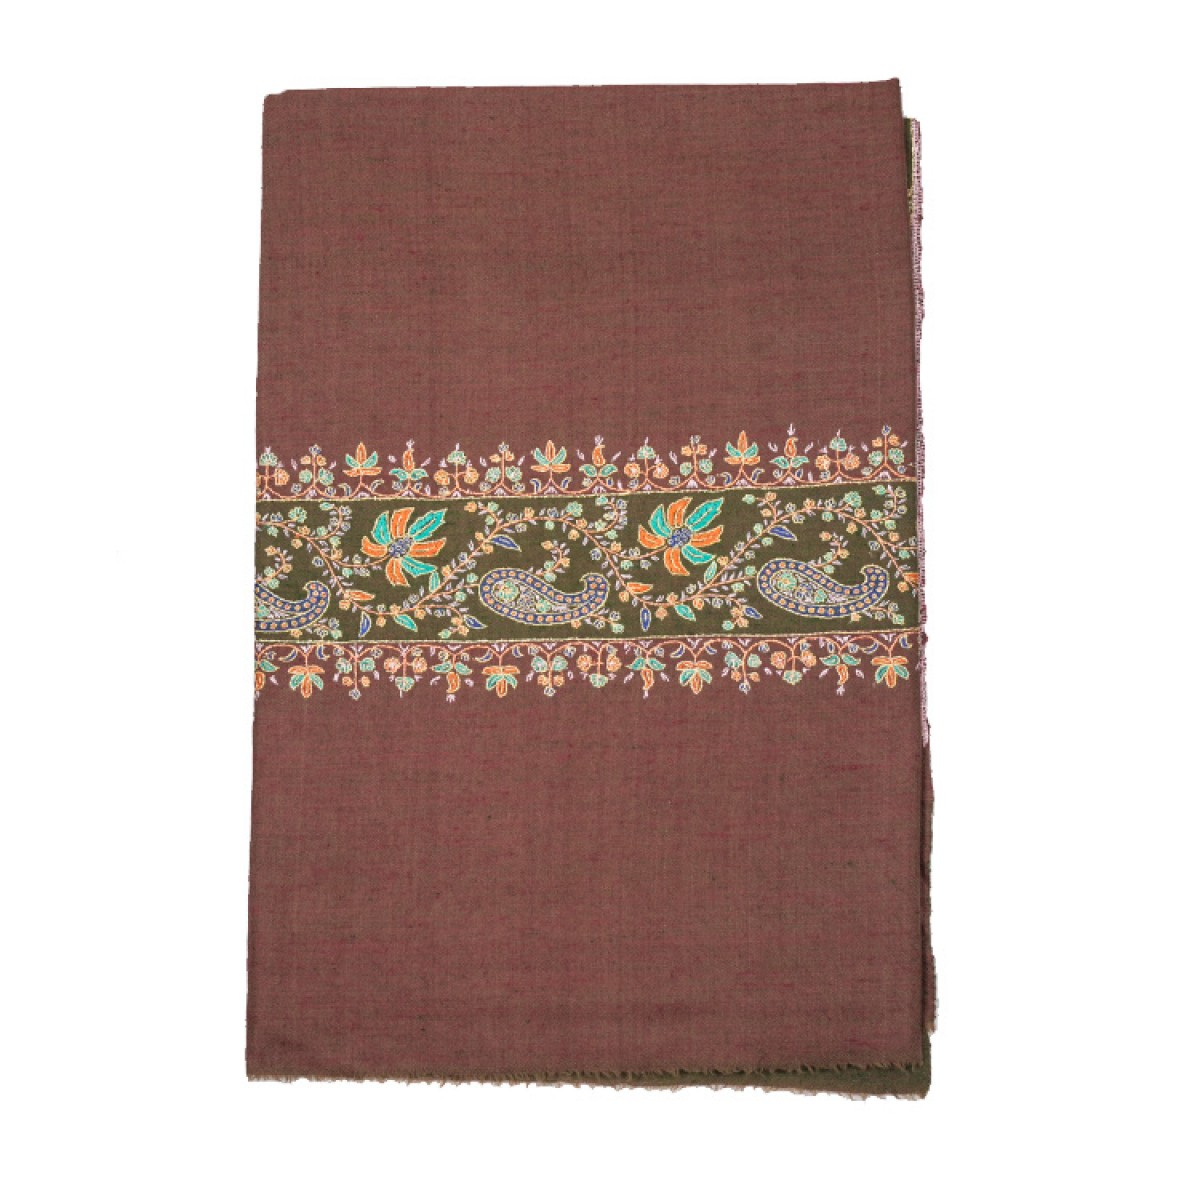 Embroidered Pashmina Shawl - Rust